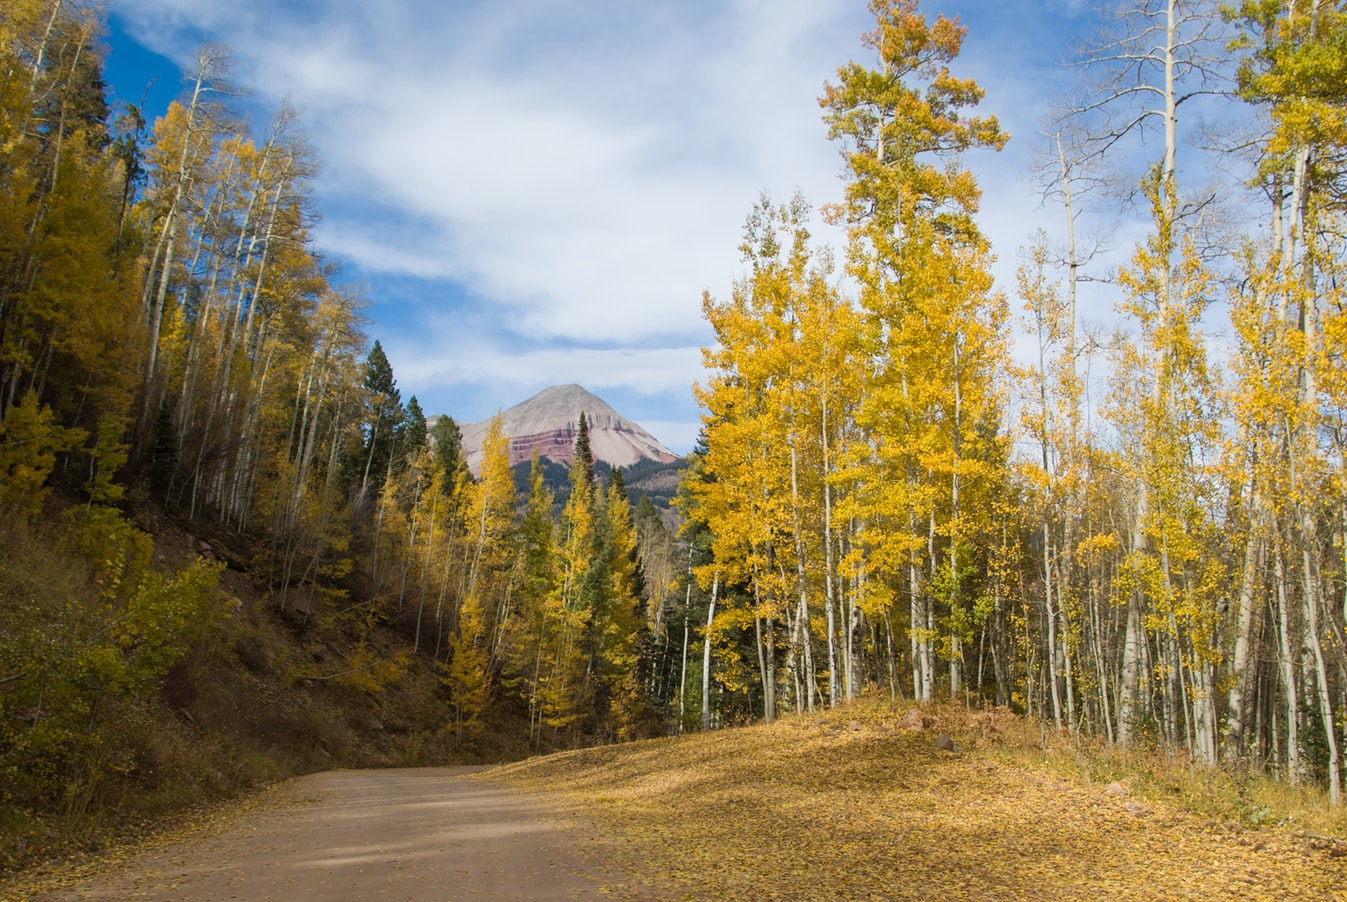 Fall leaves durango  | Real Estate and Lifestyle in Northern Colorado, a blog by Joanna Gyrath, Realtor | Search homes in Fort Collins, Loveland, Greeley, Windsor, Longmont, Laporte, Wellington, Timnath, Severance, Eaton, Evans, Livermore, Red Feather Lakes